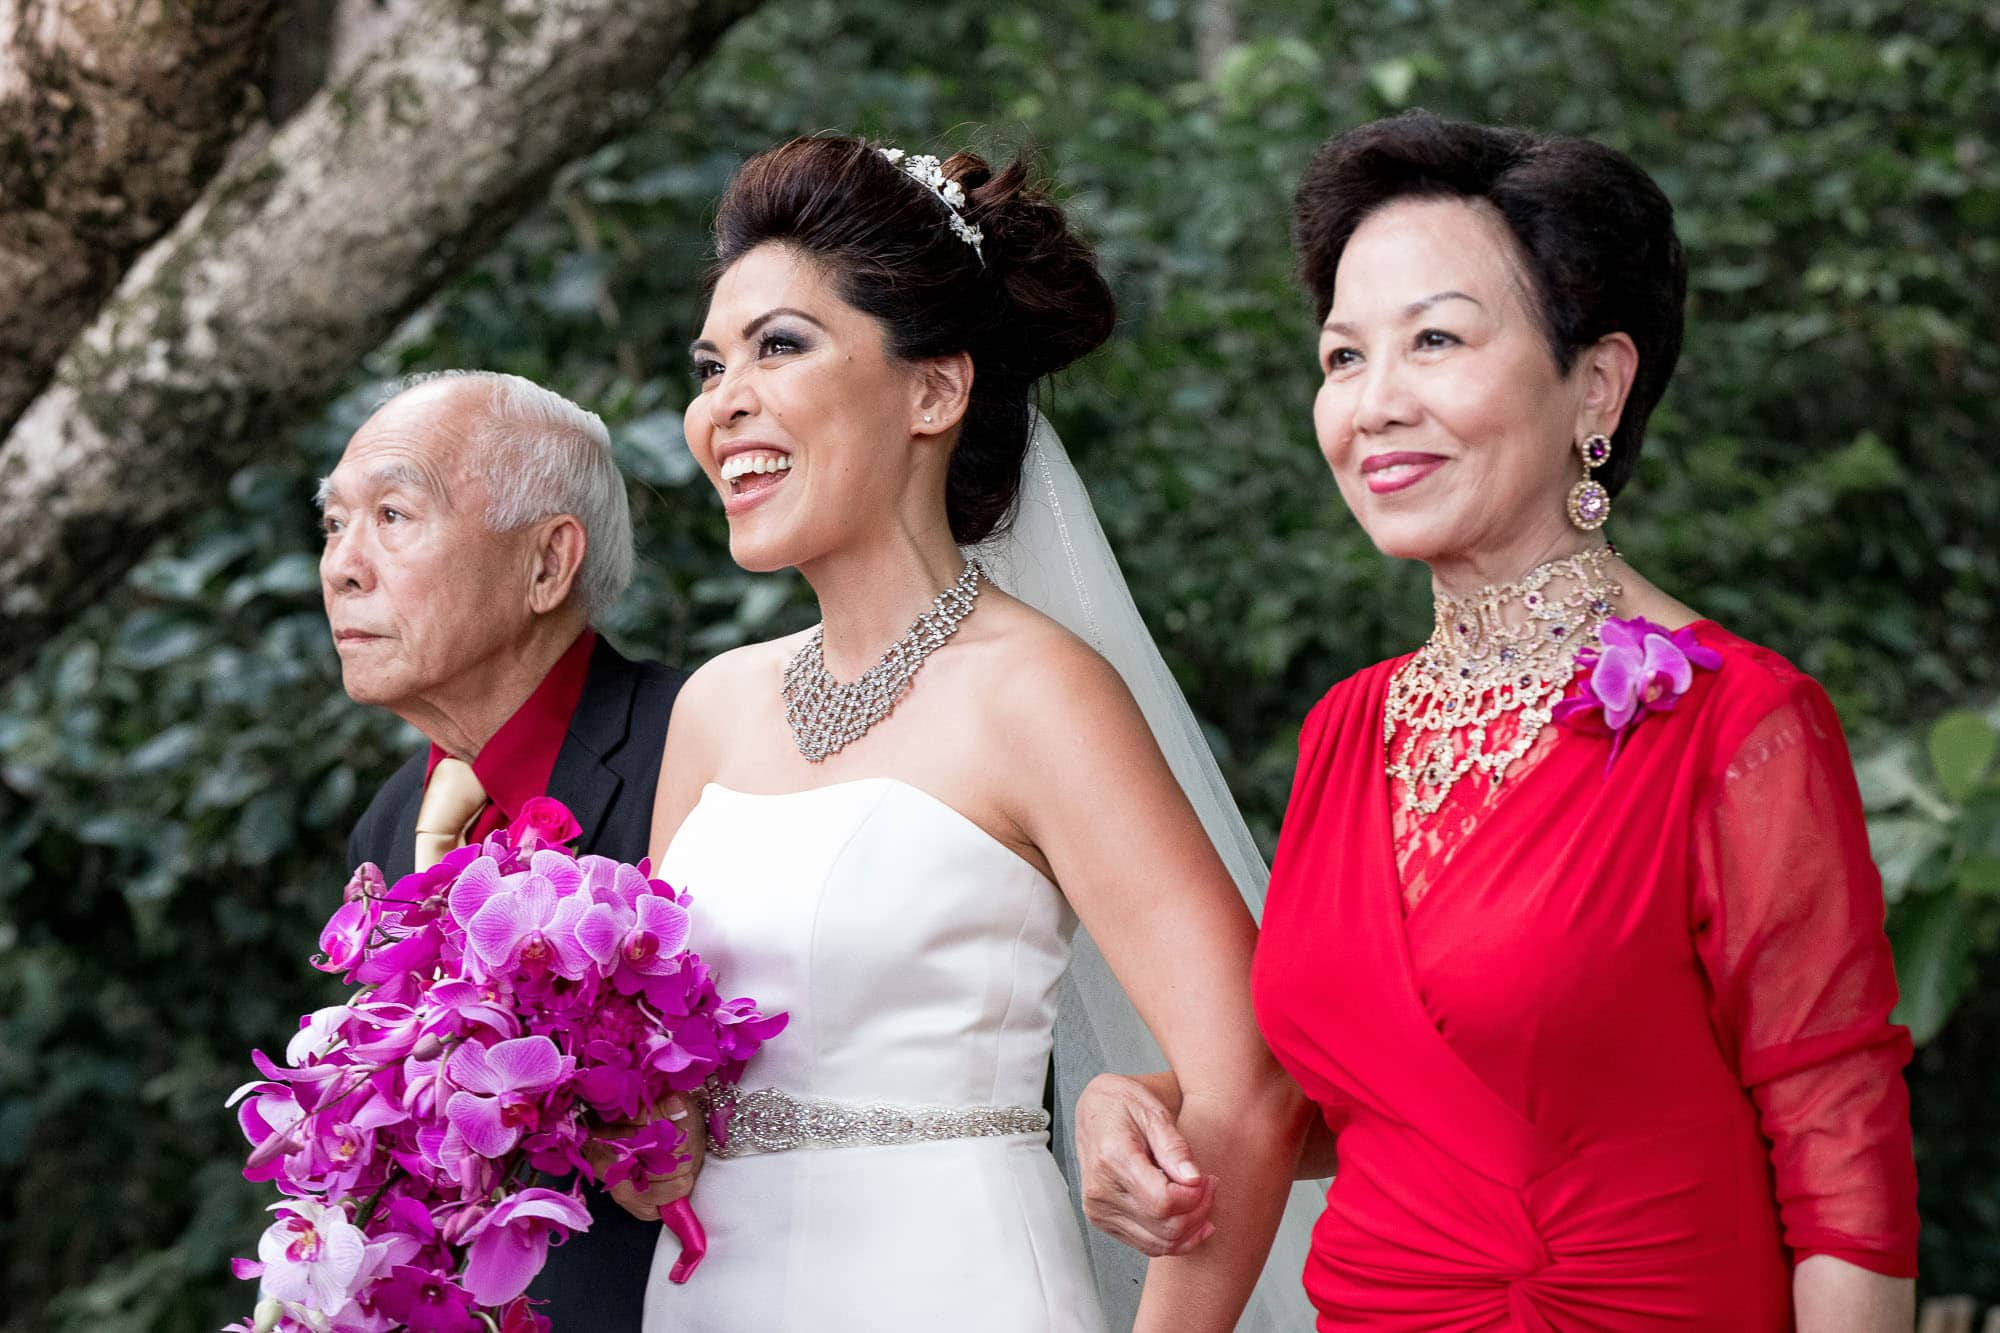 The bride comes down the aisle with her parents at her beachside wedding